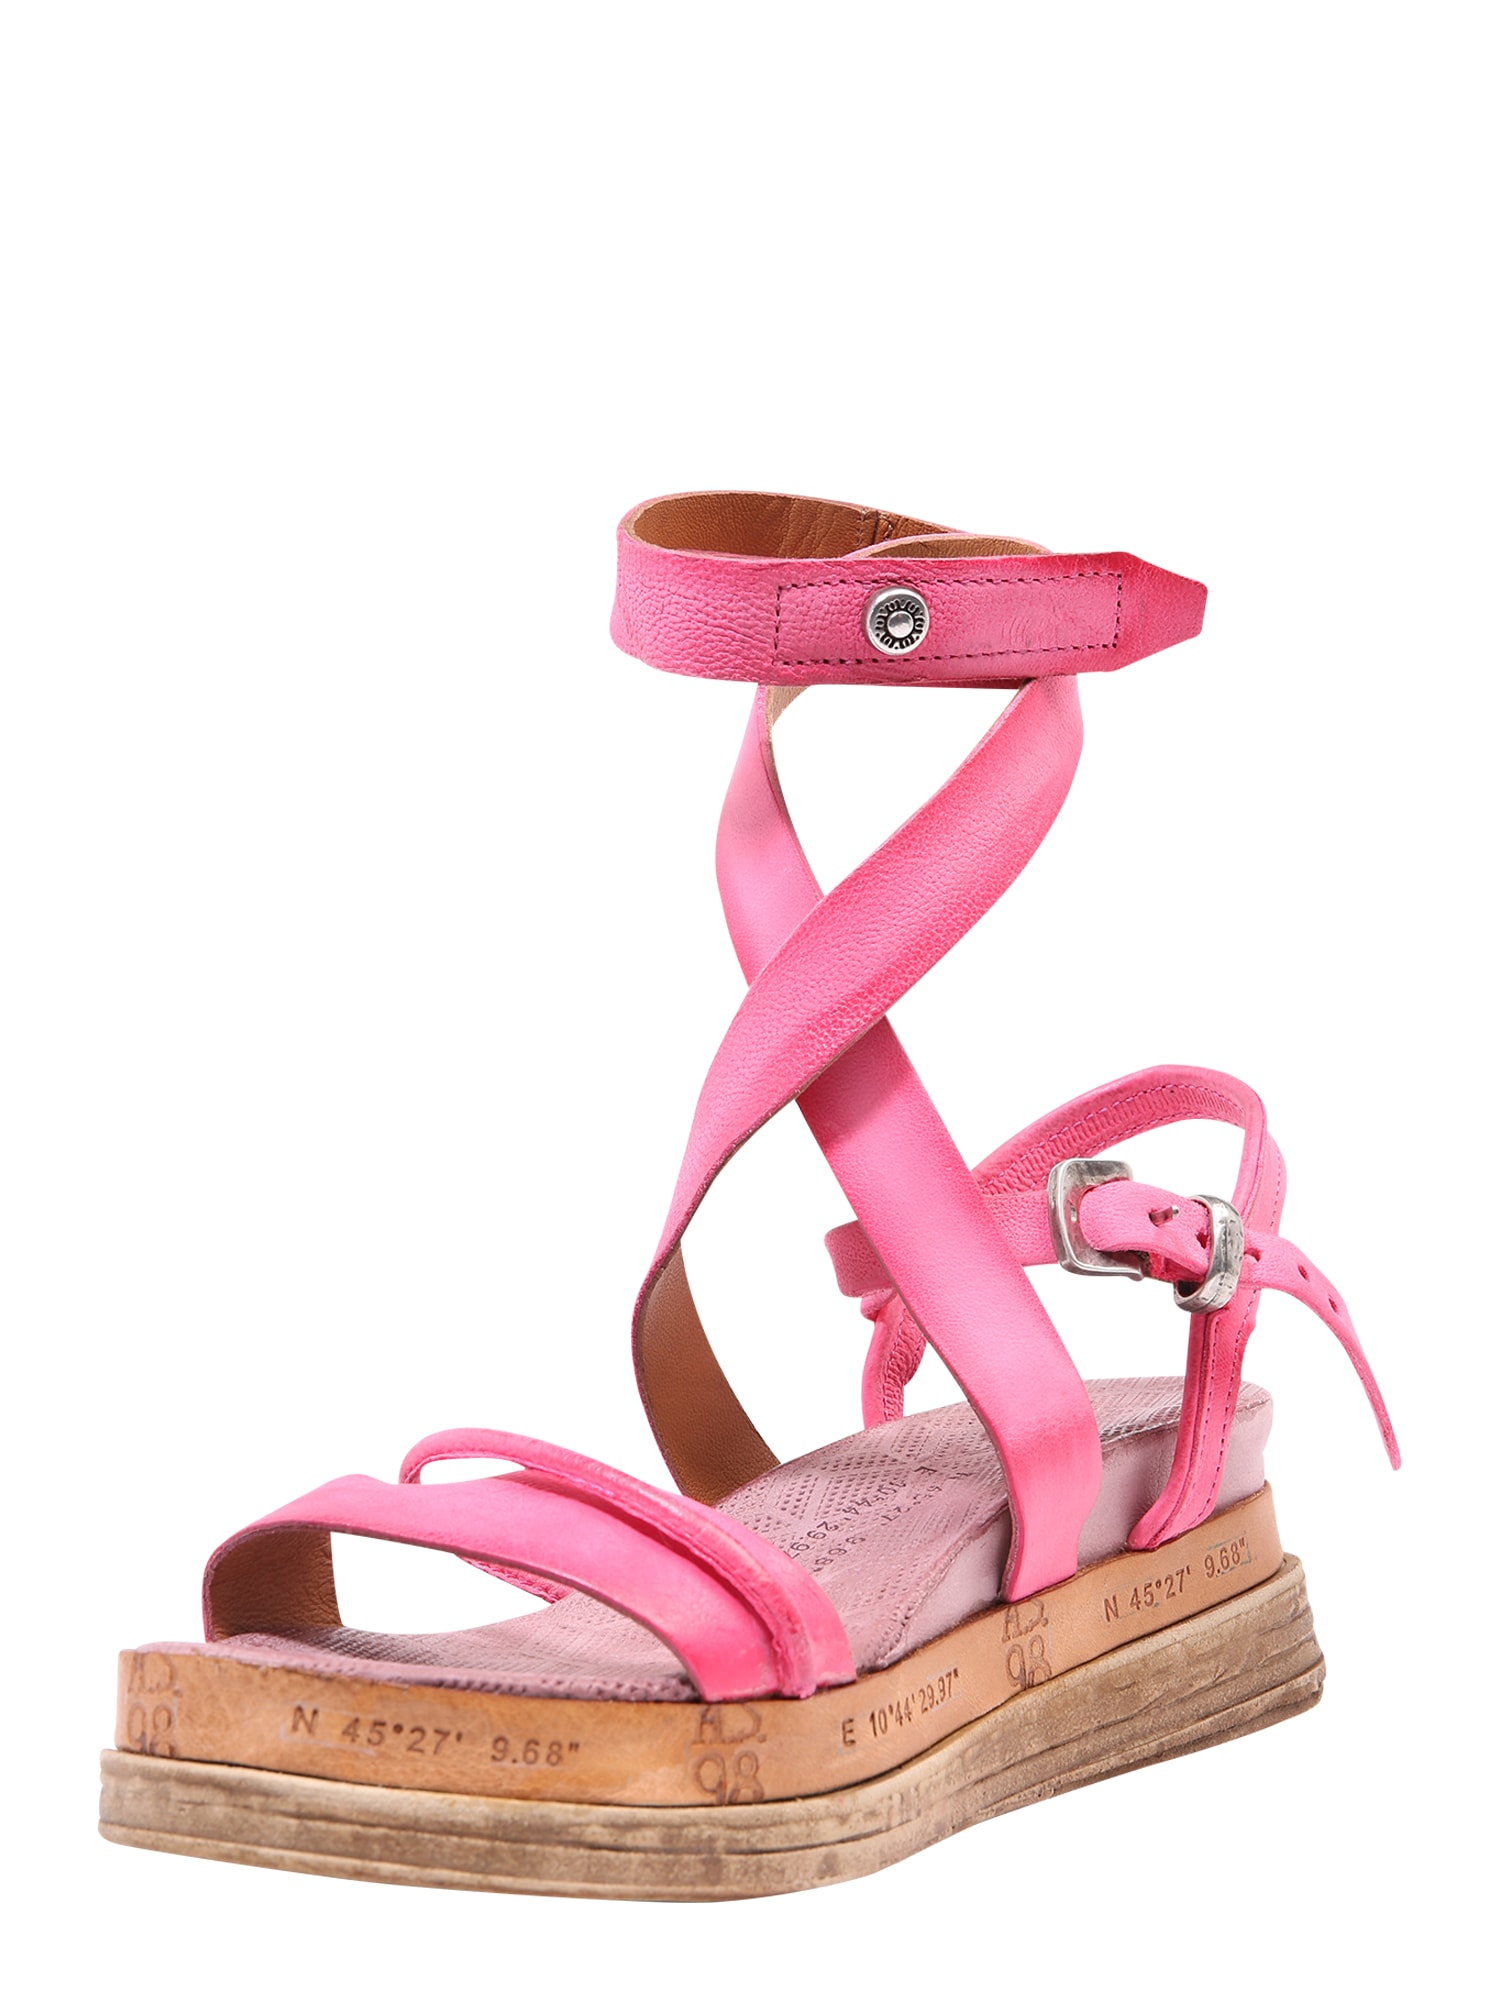 Sandály LAGOS pink A.S.98